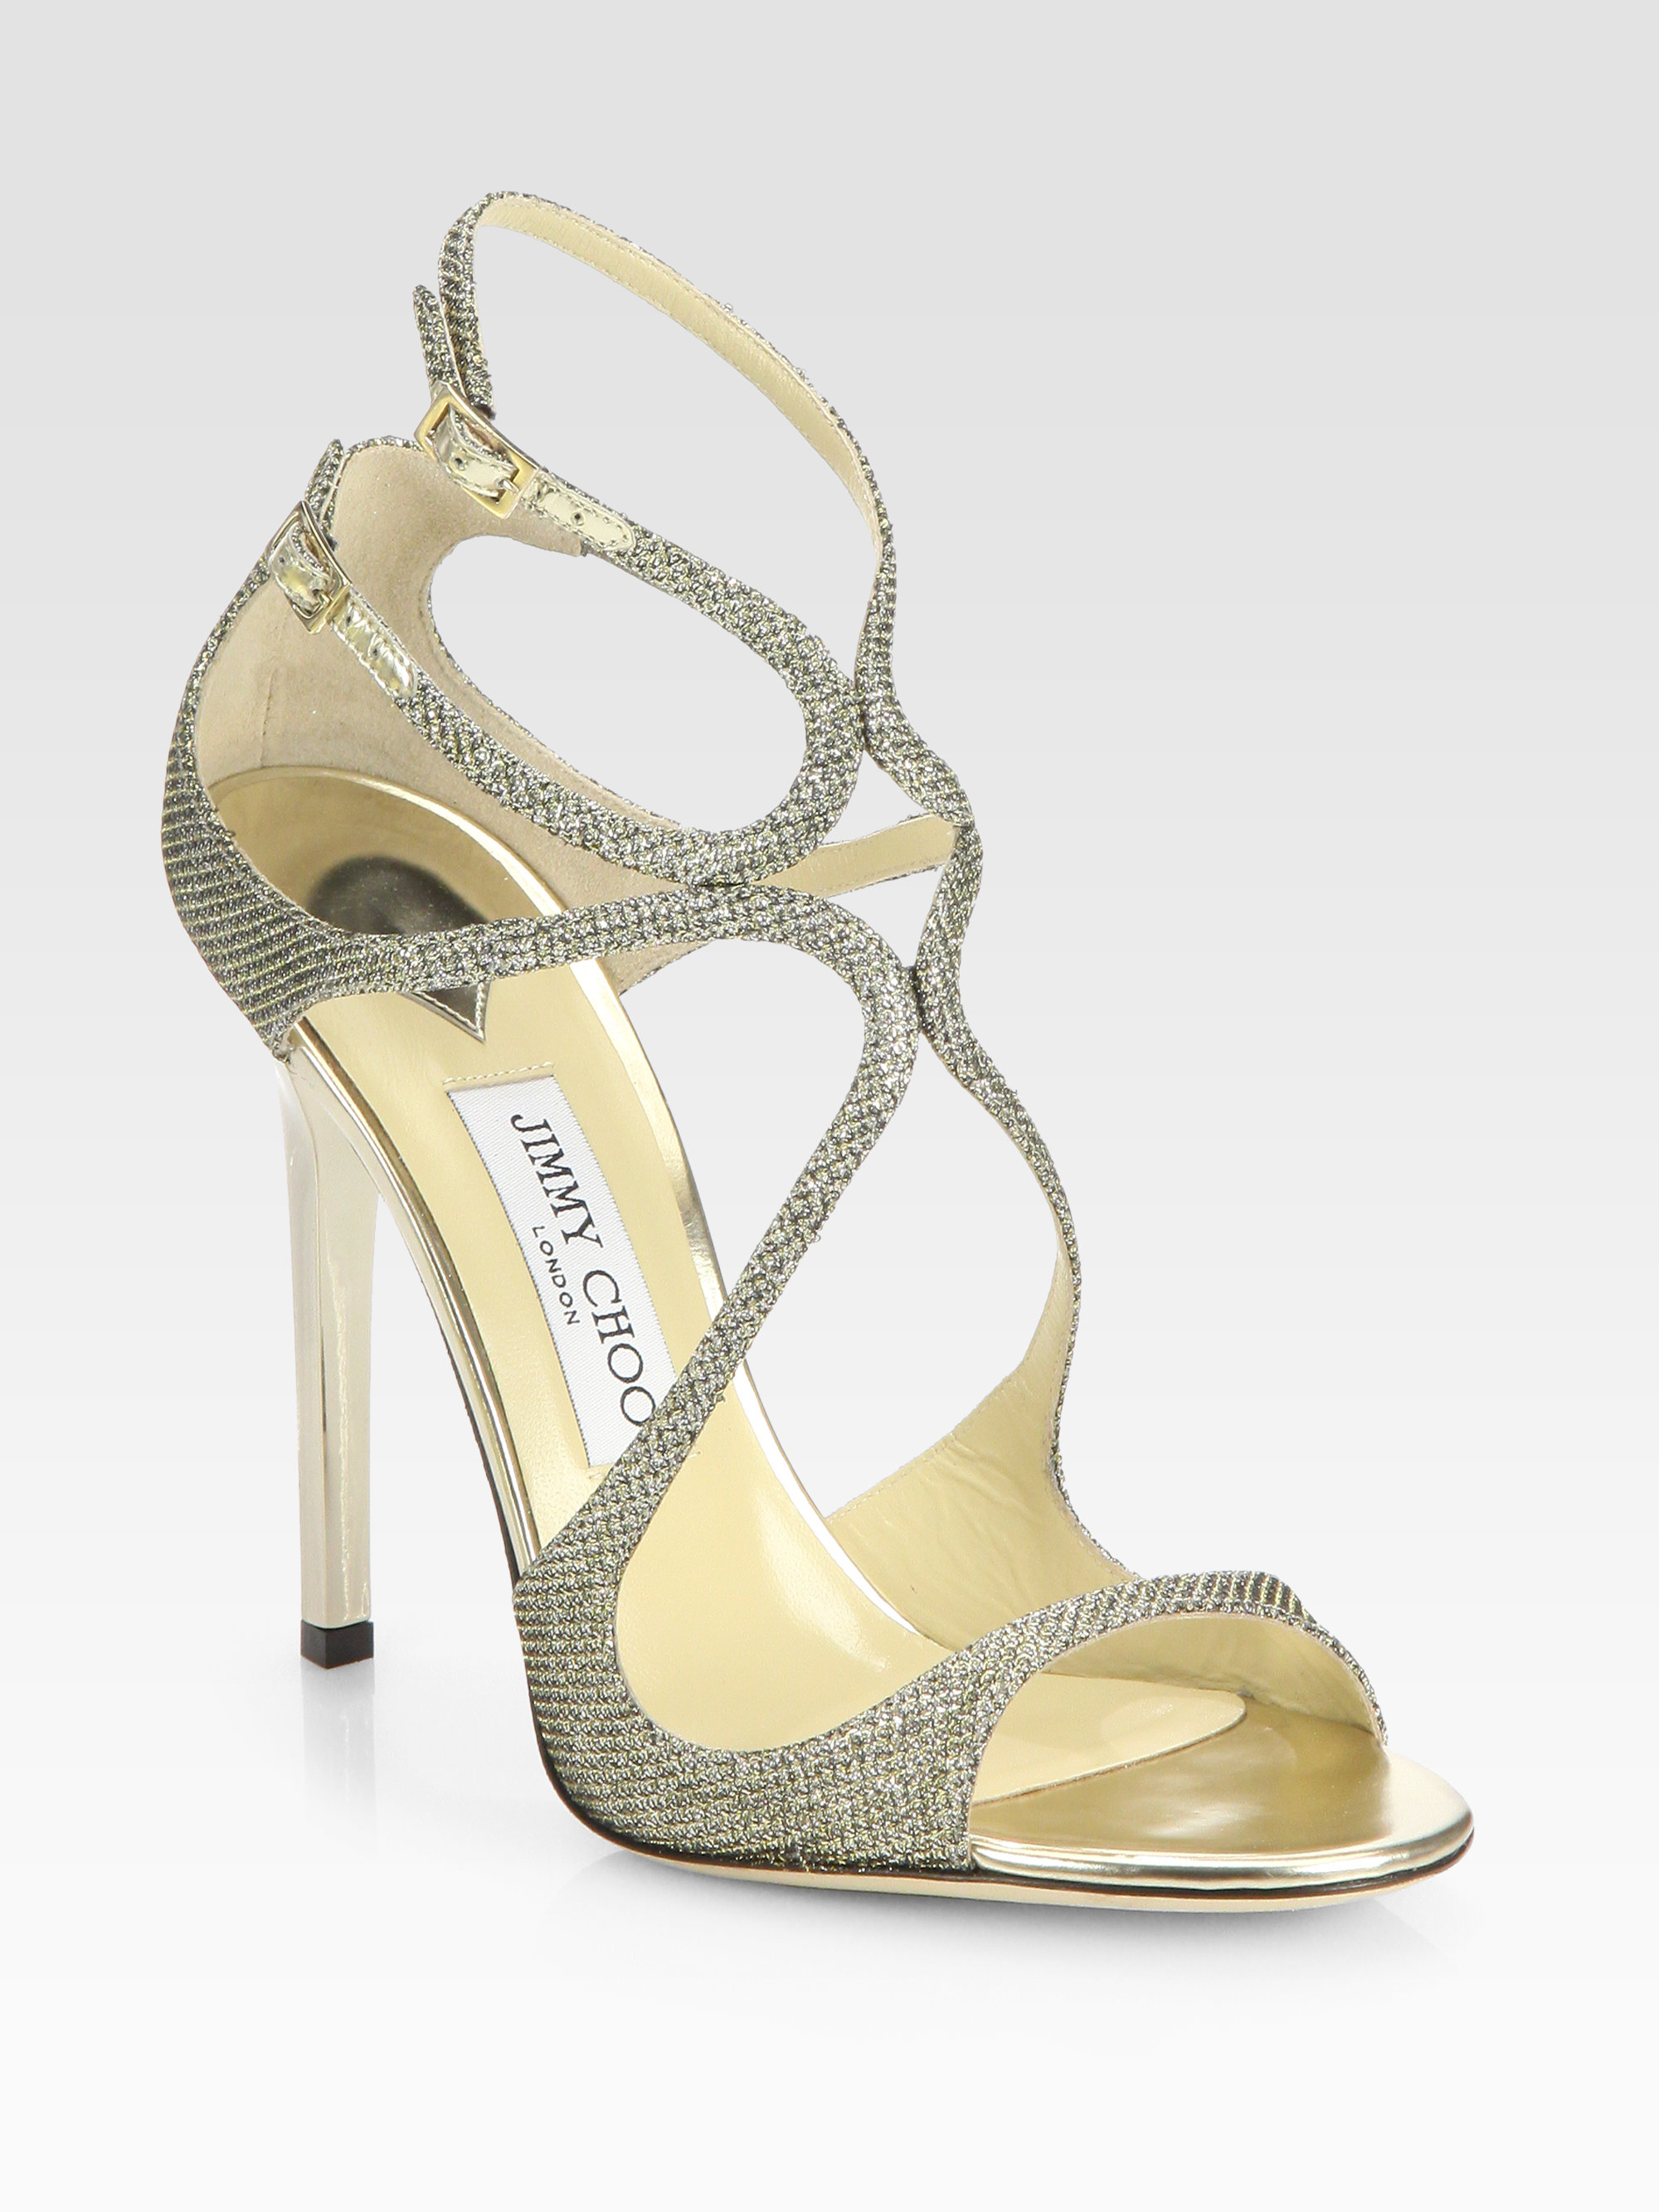 8c87ae47df3 Lyst - Jimmy Choo Lance Lam233 Glitter Sandals in Metallic